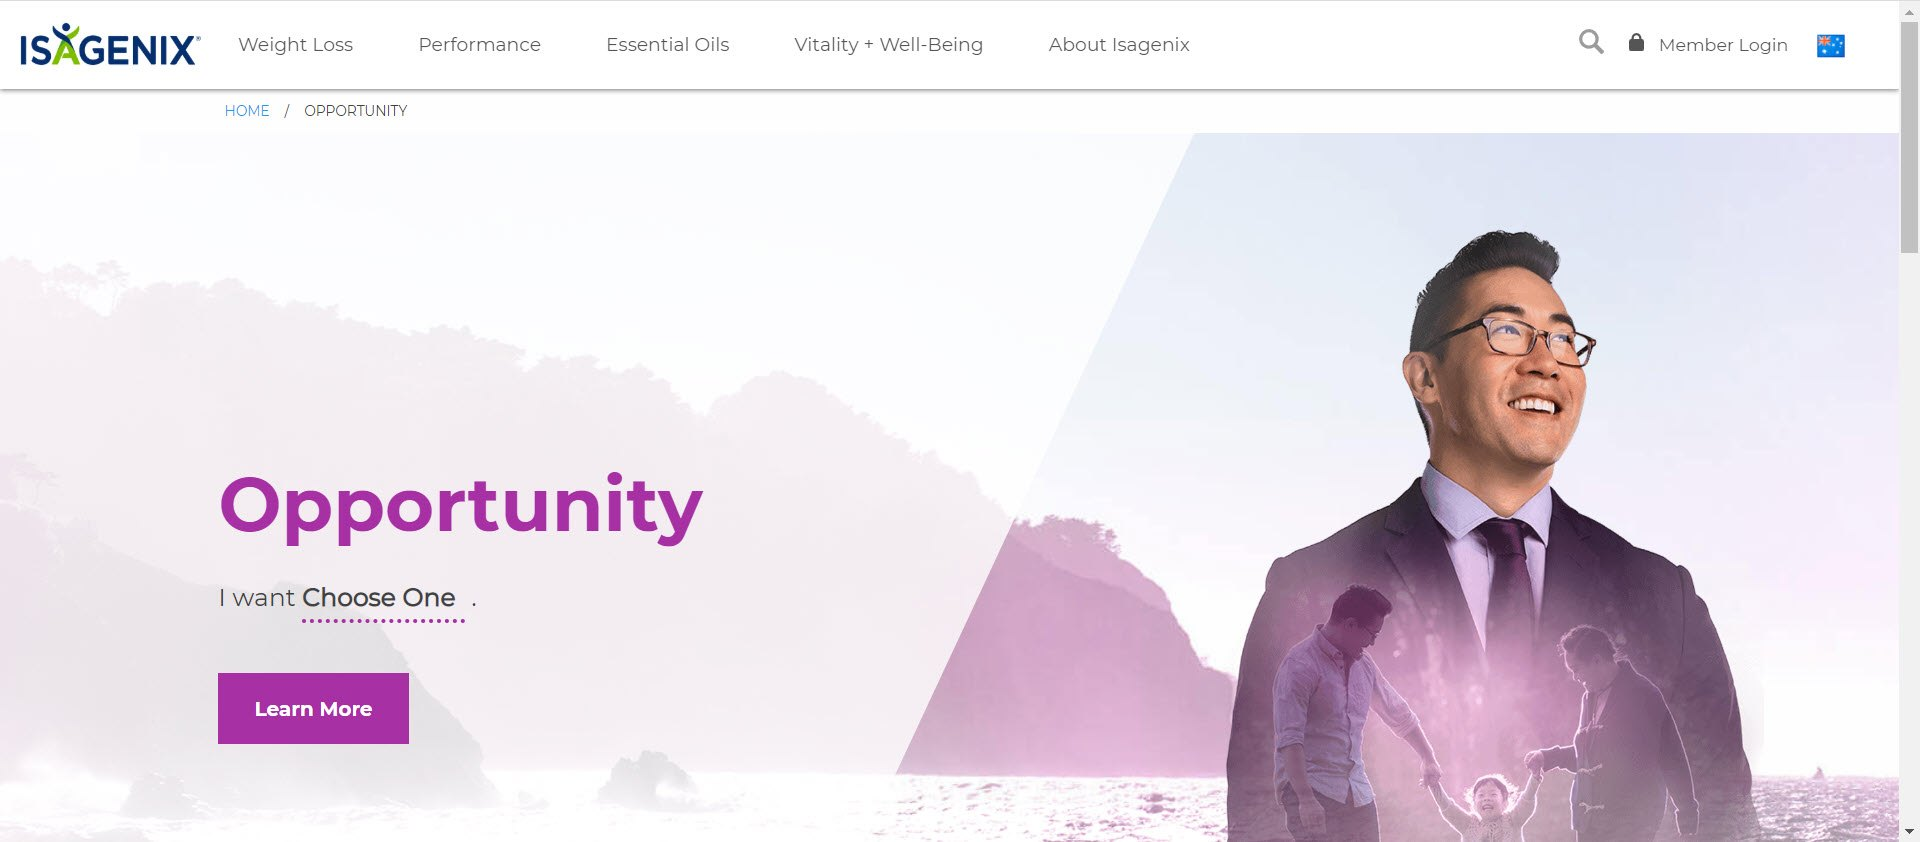 Is Isagenix a MLM - opportunity page